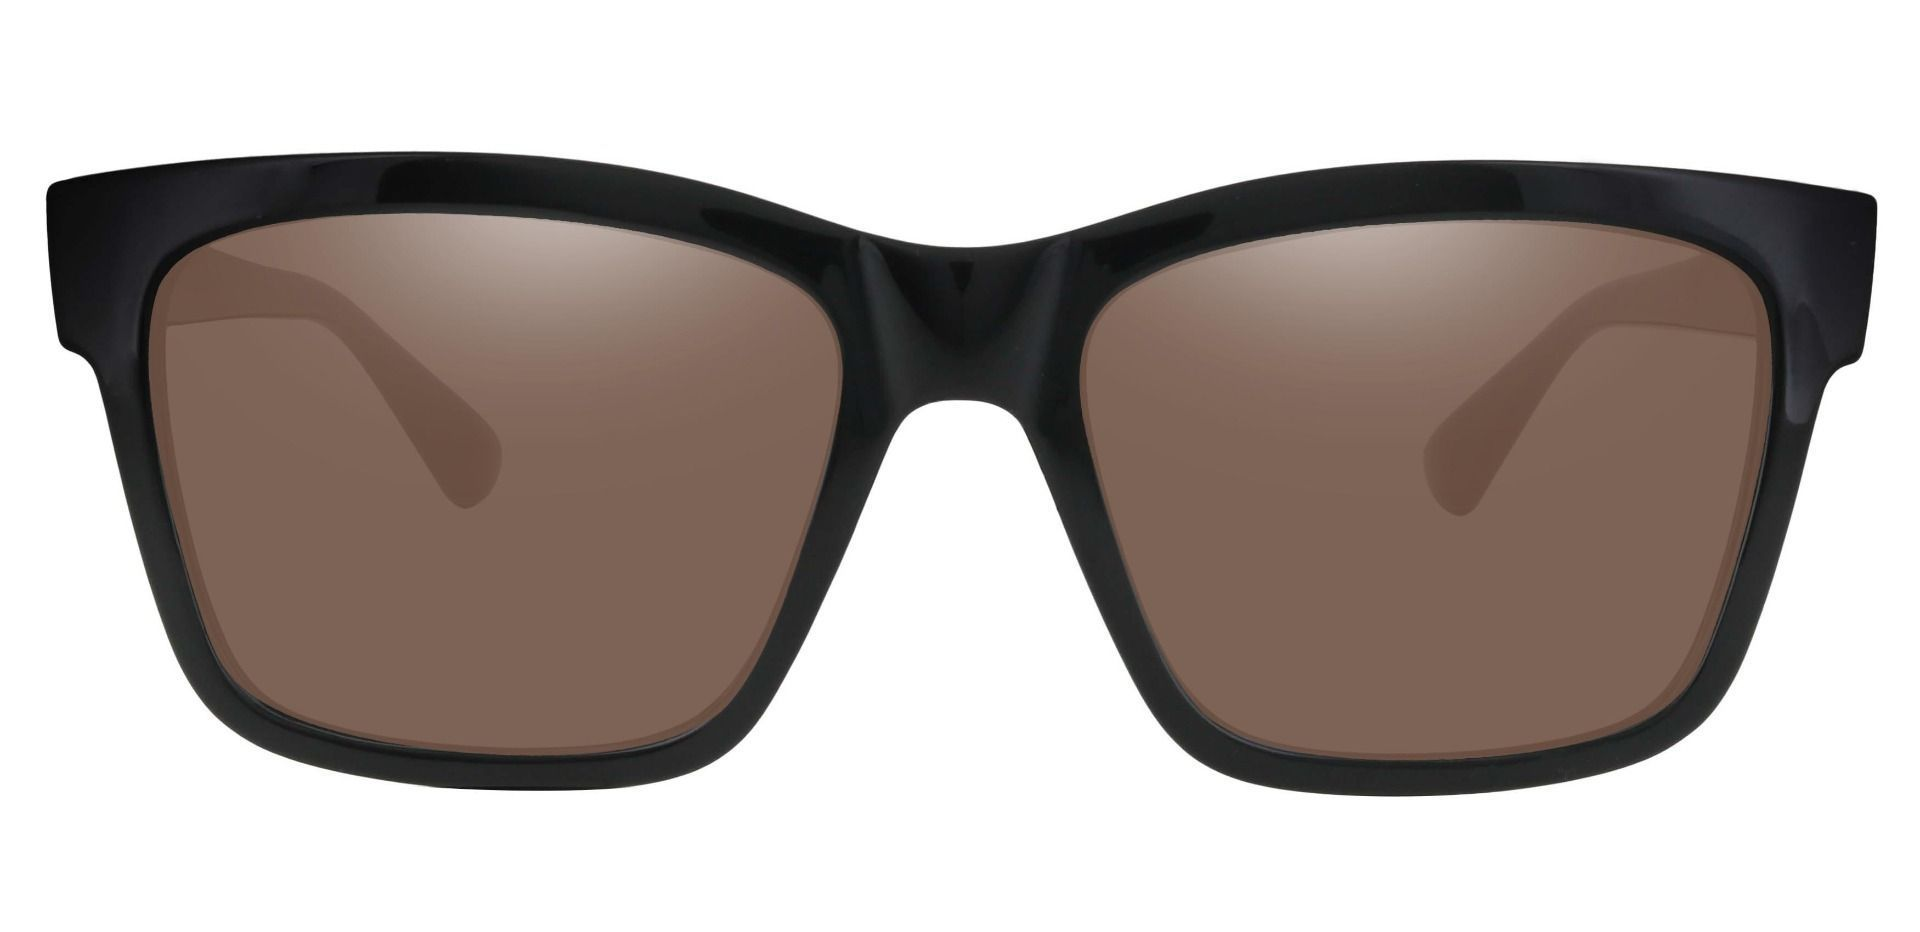 Brinley Square Lined Bifocal Sunglasses - Black Frame With Brown Lenses